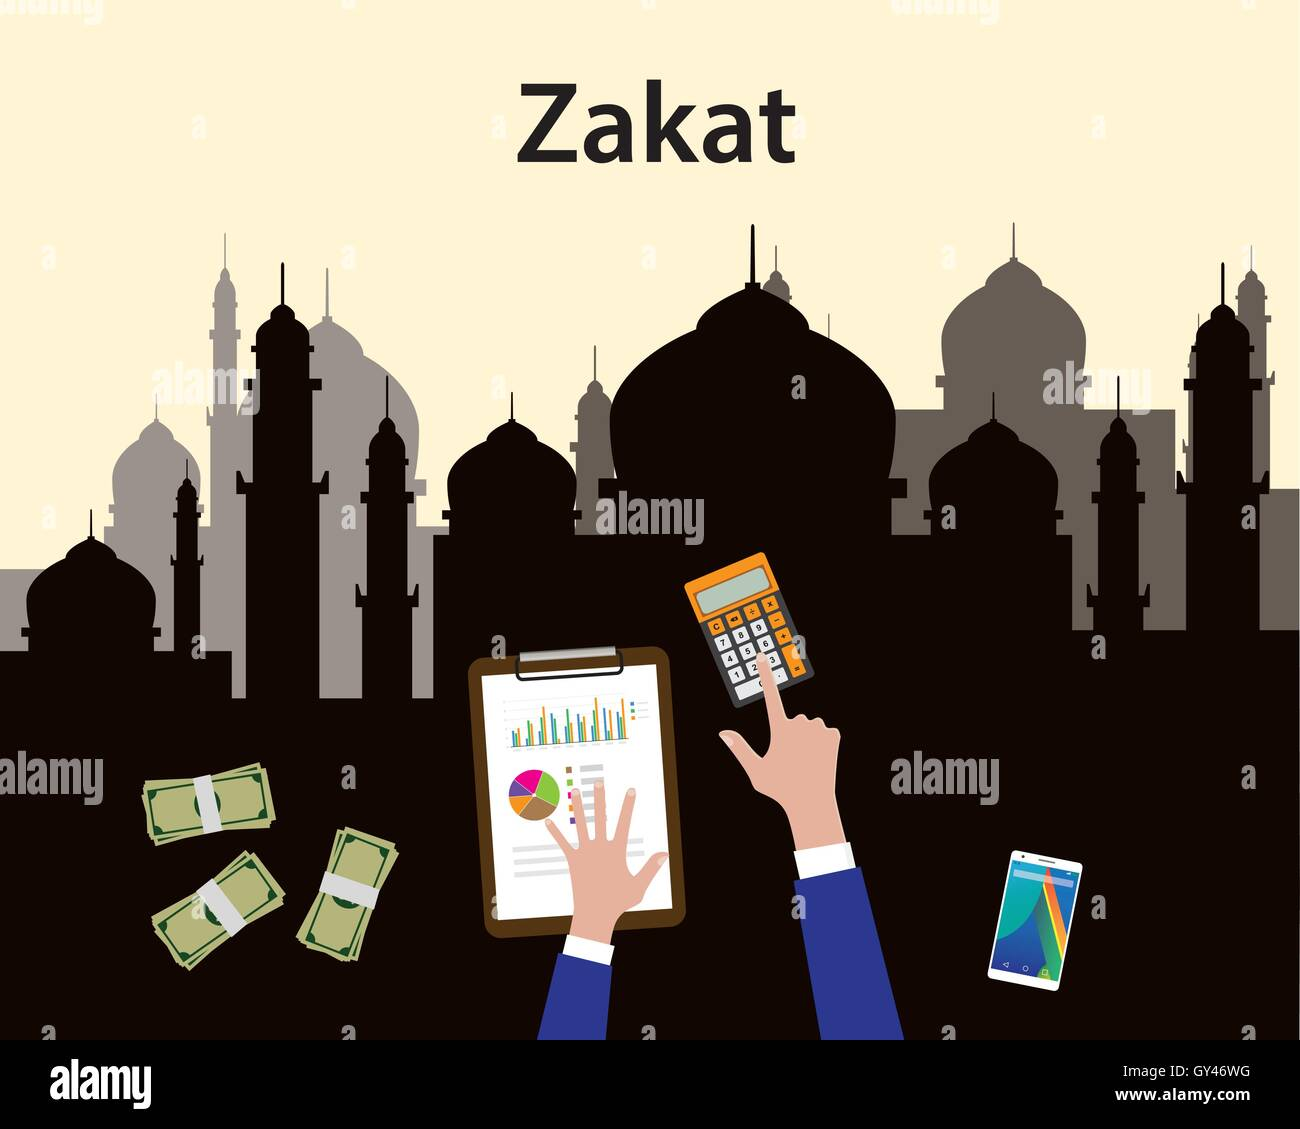 zakat concept moslem islam count counting money with hand view from stock vector image art alamy https www alamy com stock photo zakat concept moslem islam count counting money with hand view from 119951148 html